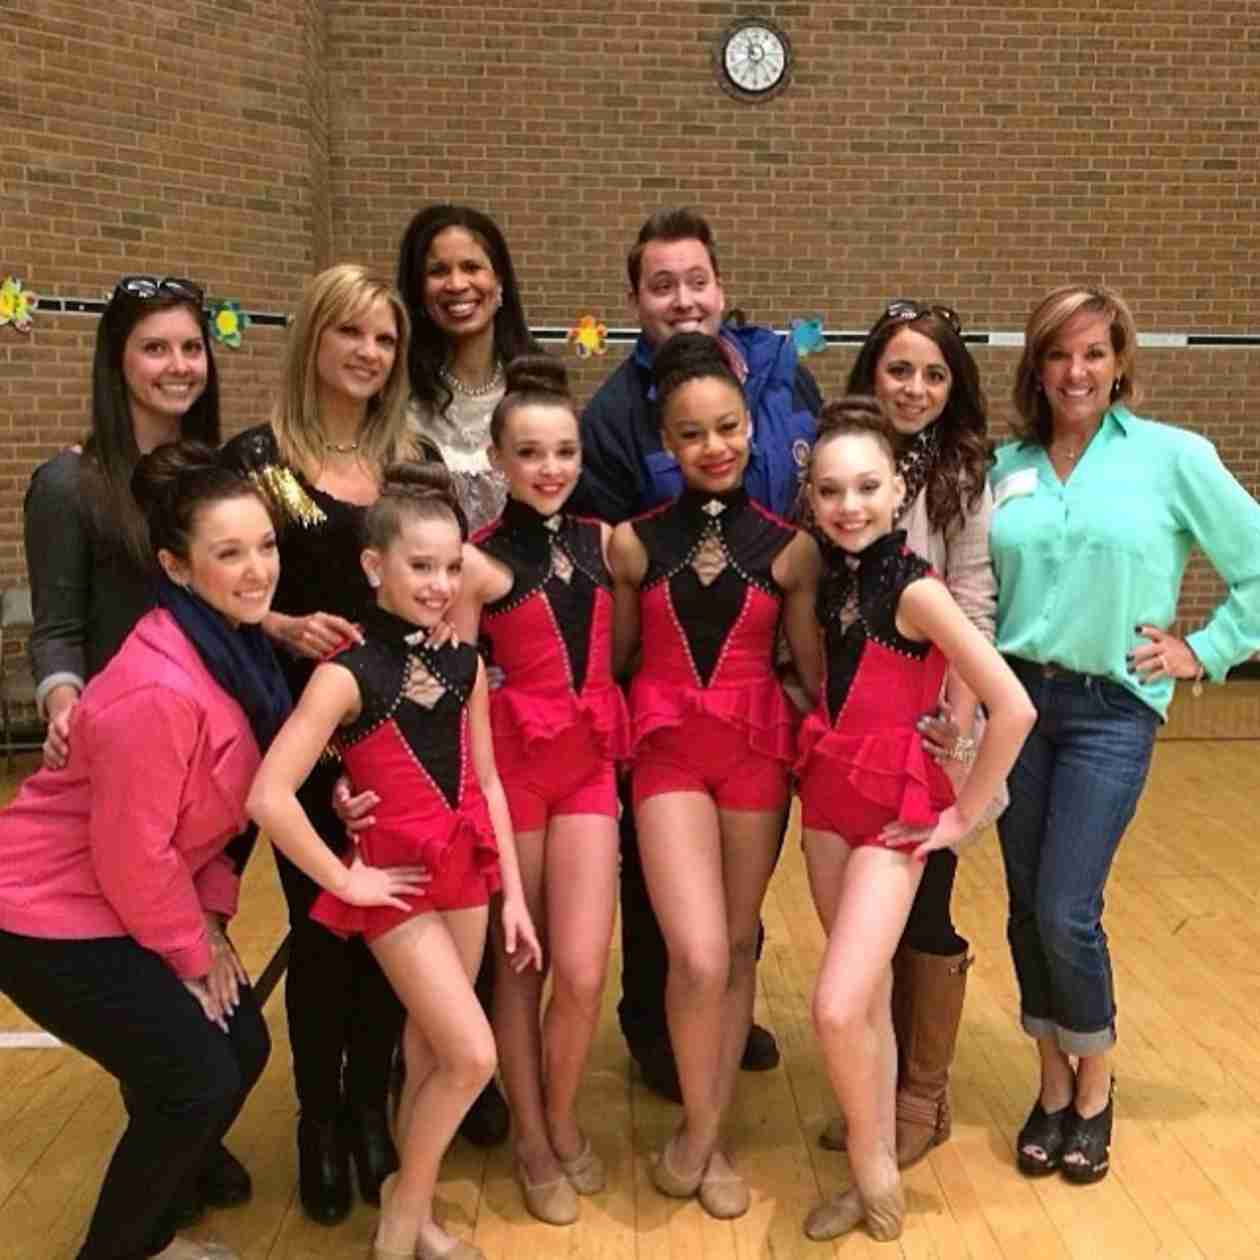 Dance Moms Cast Takes a Break From the Drama to Do Some Good! (PHOTO)